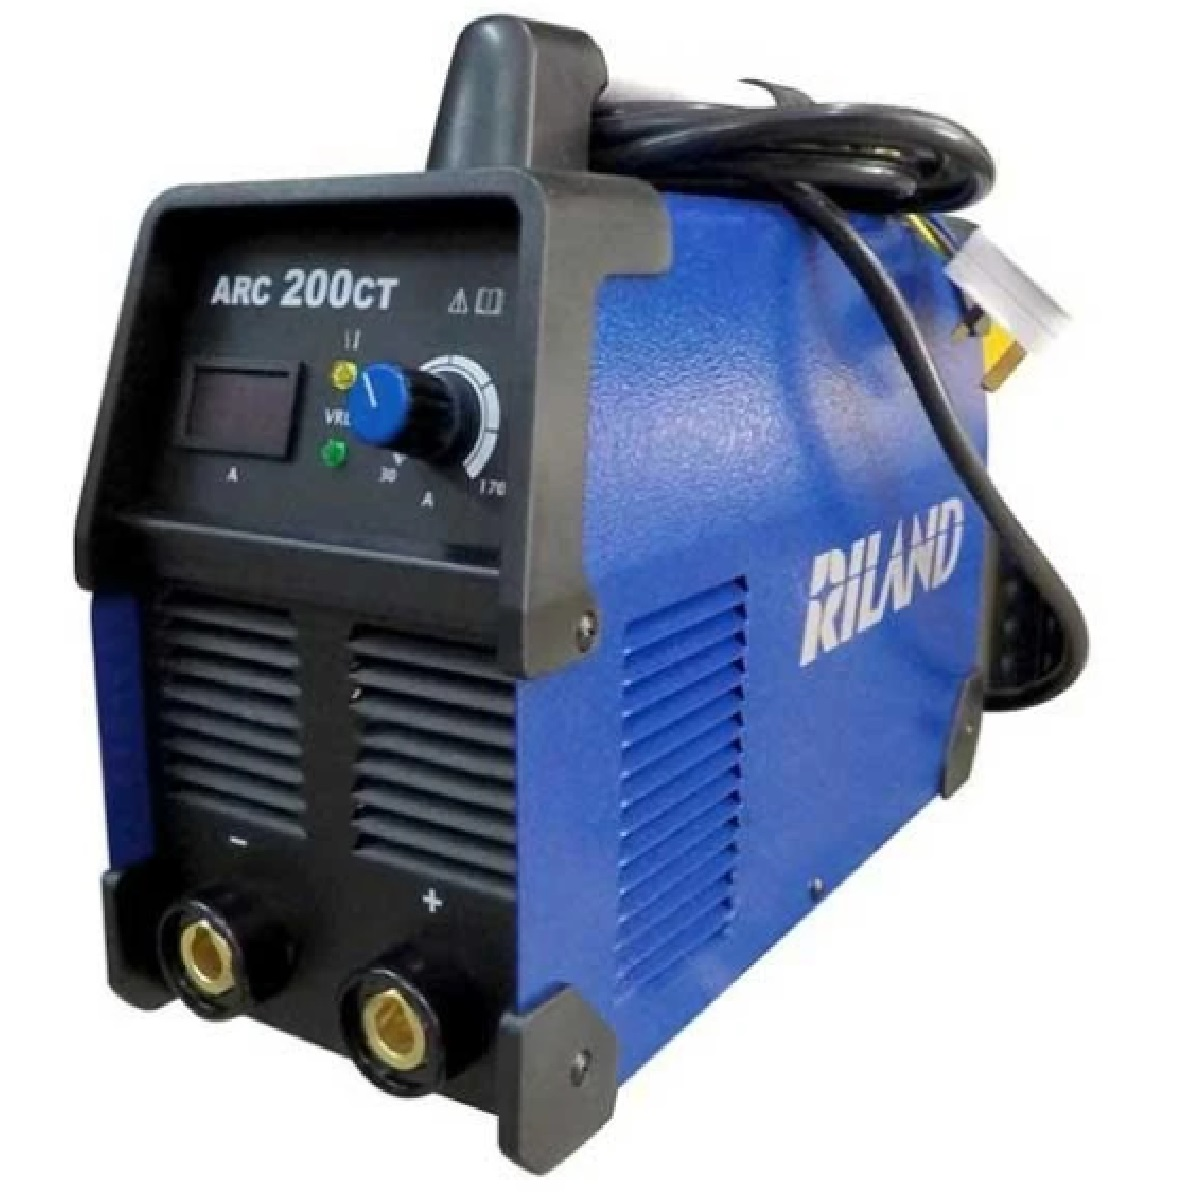 Riland ARC200CT 220V Welding Set Comes With 3M Ground And Welding Cable